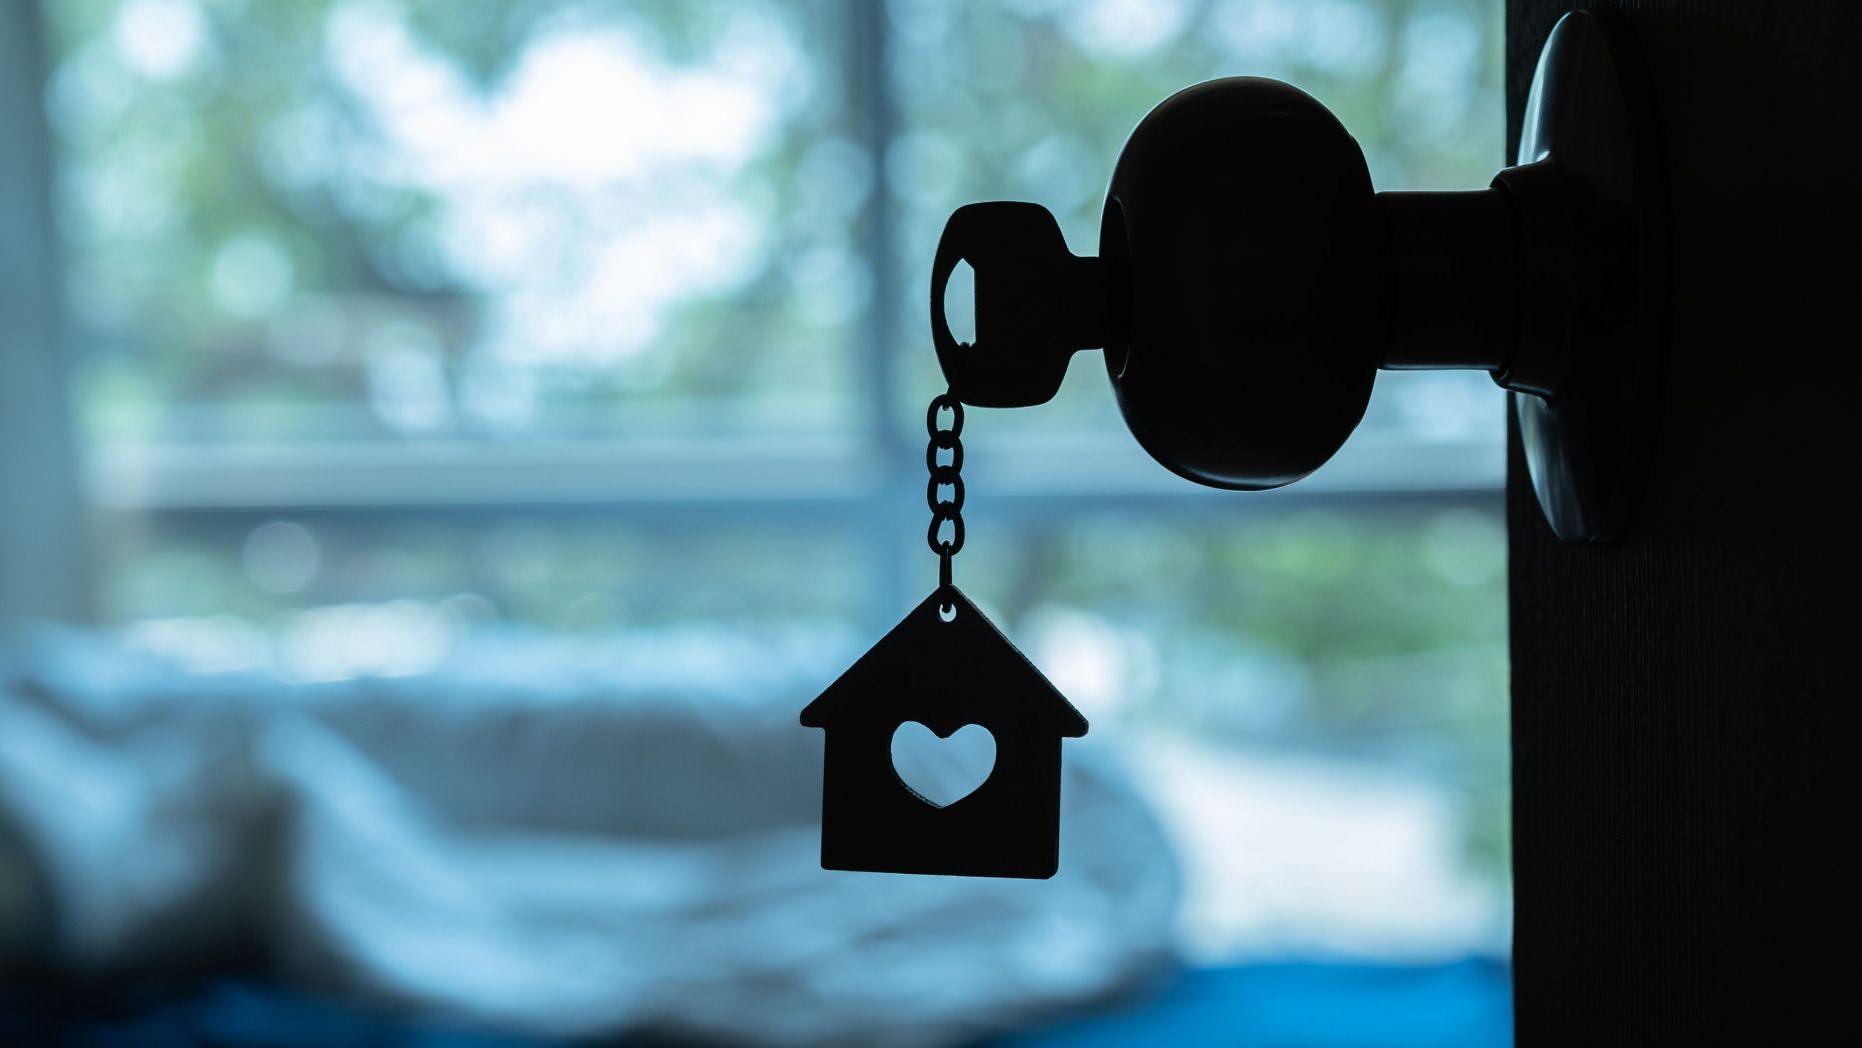 Real estate brokers switch to virtual open houses amid coronavirus outbreak